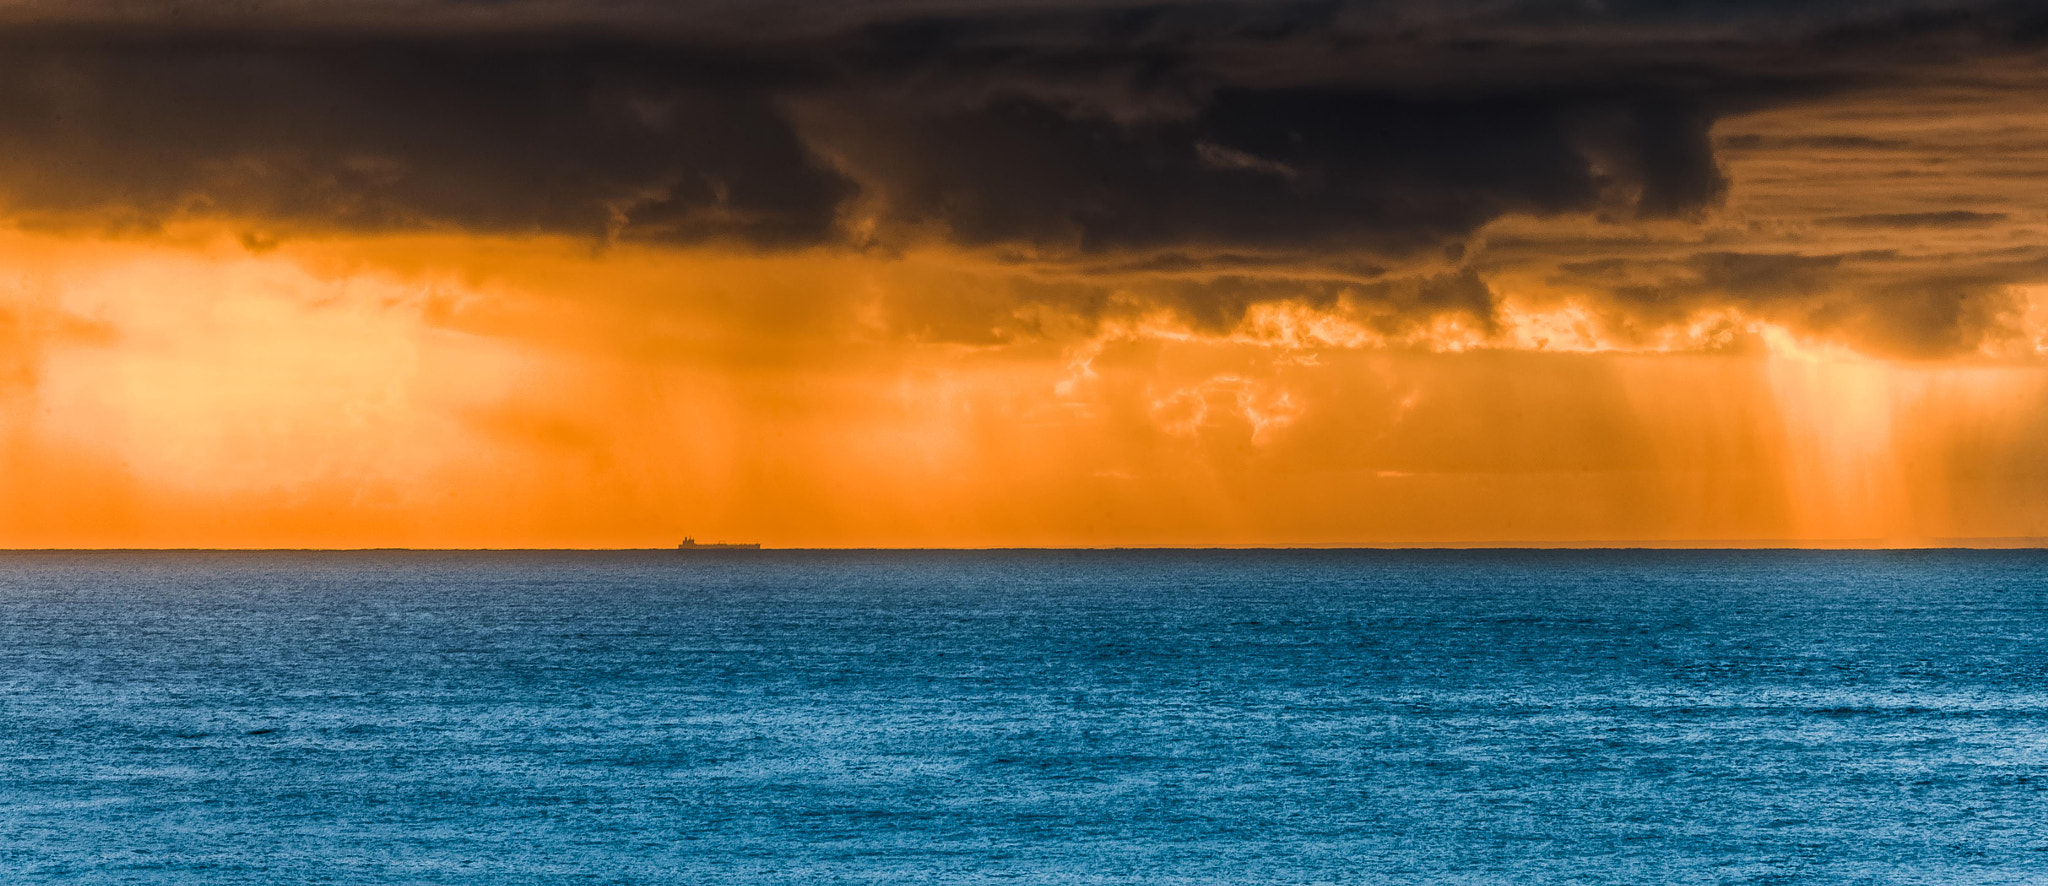 Photograph At sea... by Shane Arrold on 500px